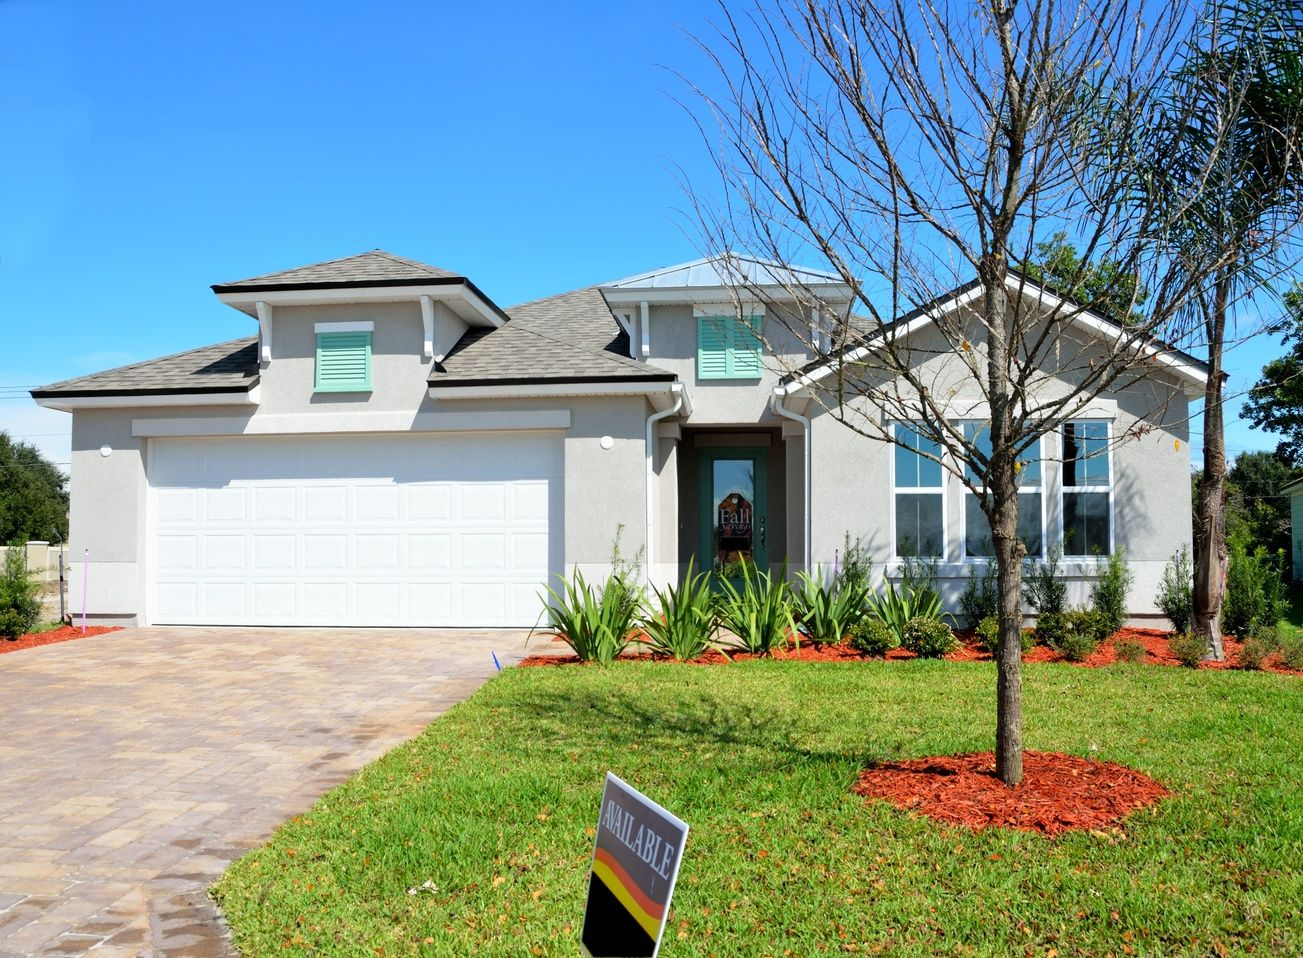 Why You Need A New Construction Home Inspection